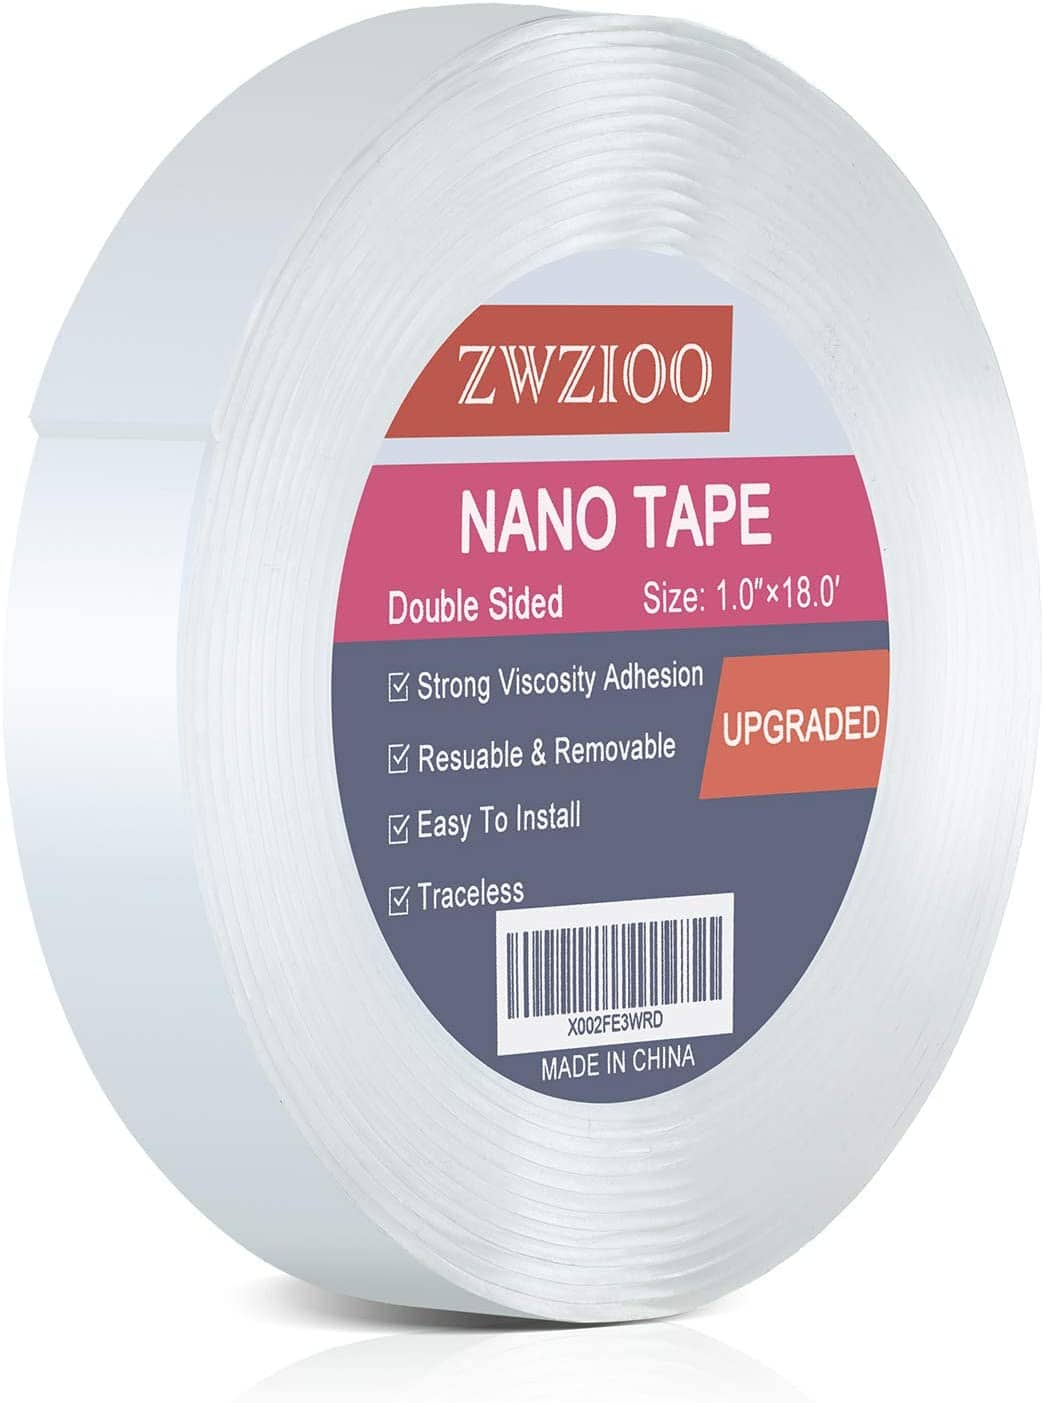 Amazon.com : Double Sided Tape Heavy Duty (18FT), Multipurpose Mounting Tape Removable Nano Tape Adhesive Gel Grip $6.27